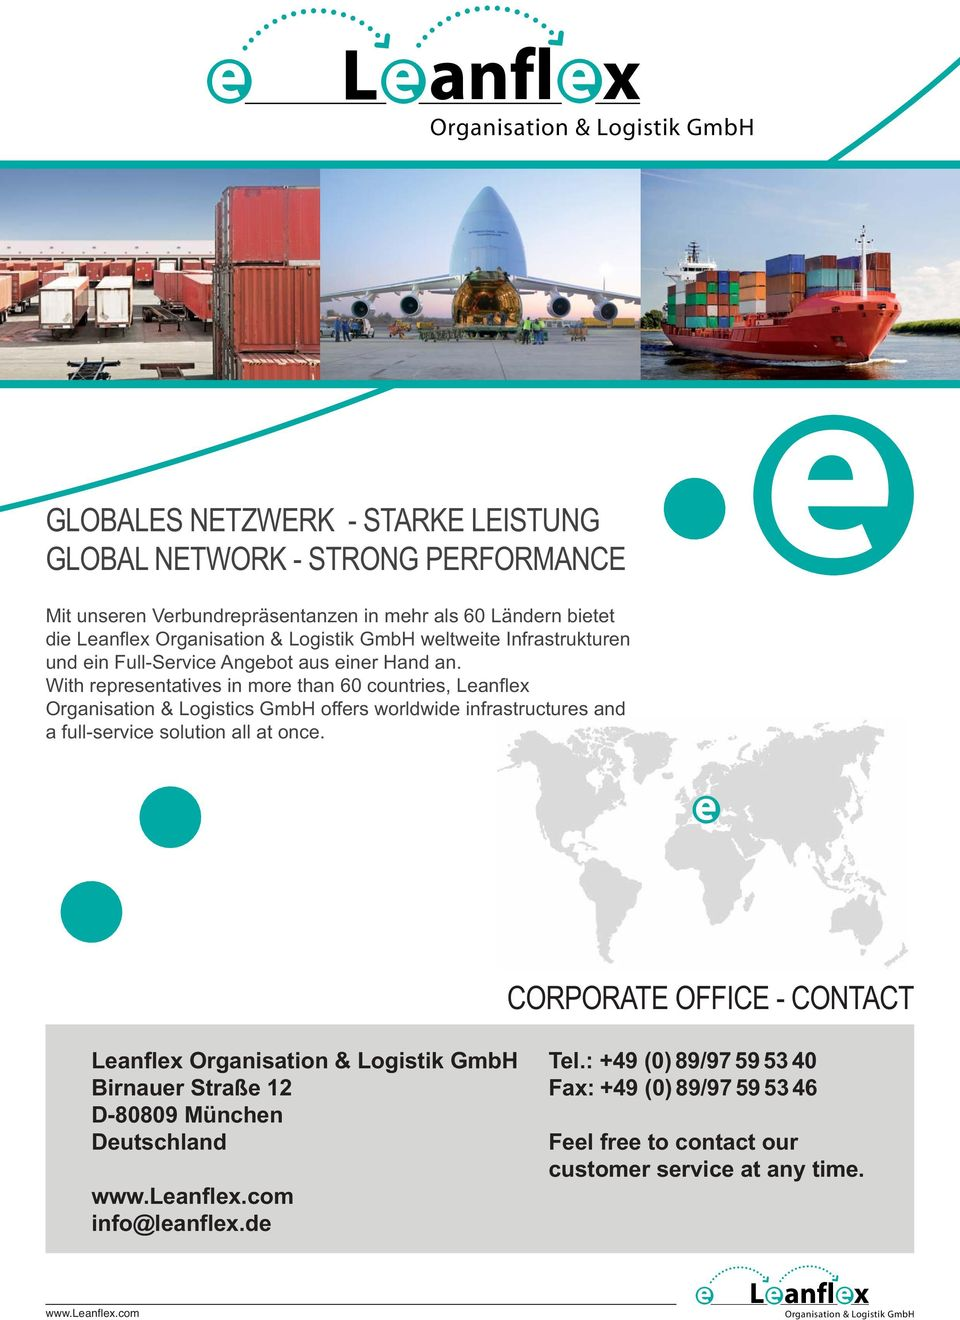 With representatives in more than 60 countries, Leanflex Organisation & Logistics GmbH offers worldwide infrastructures and a full-service solution